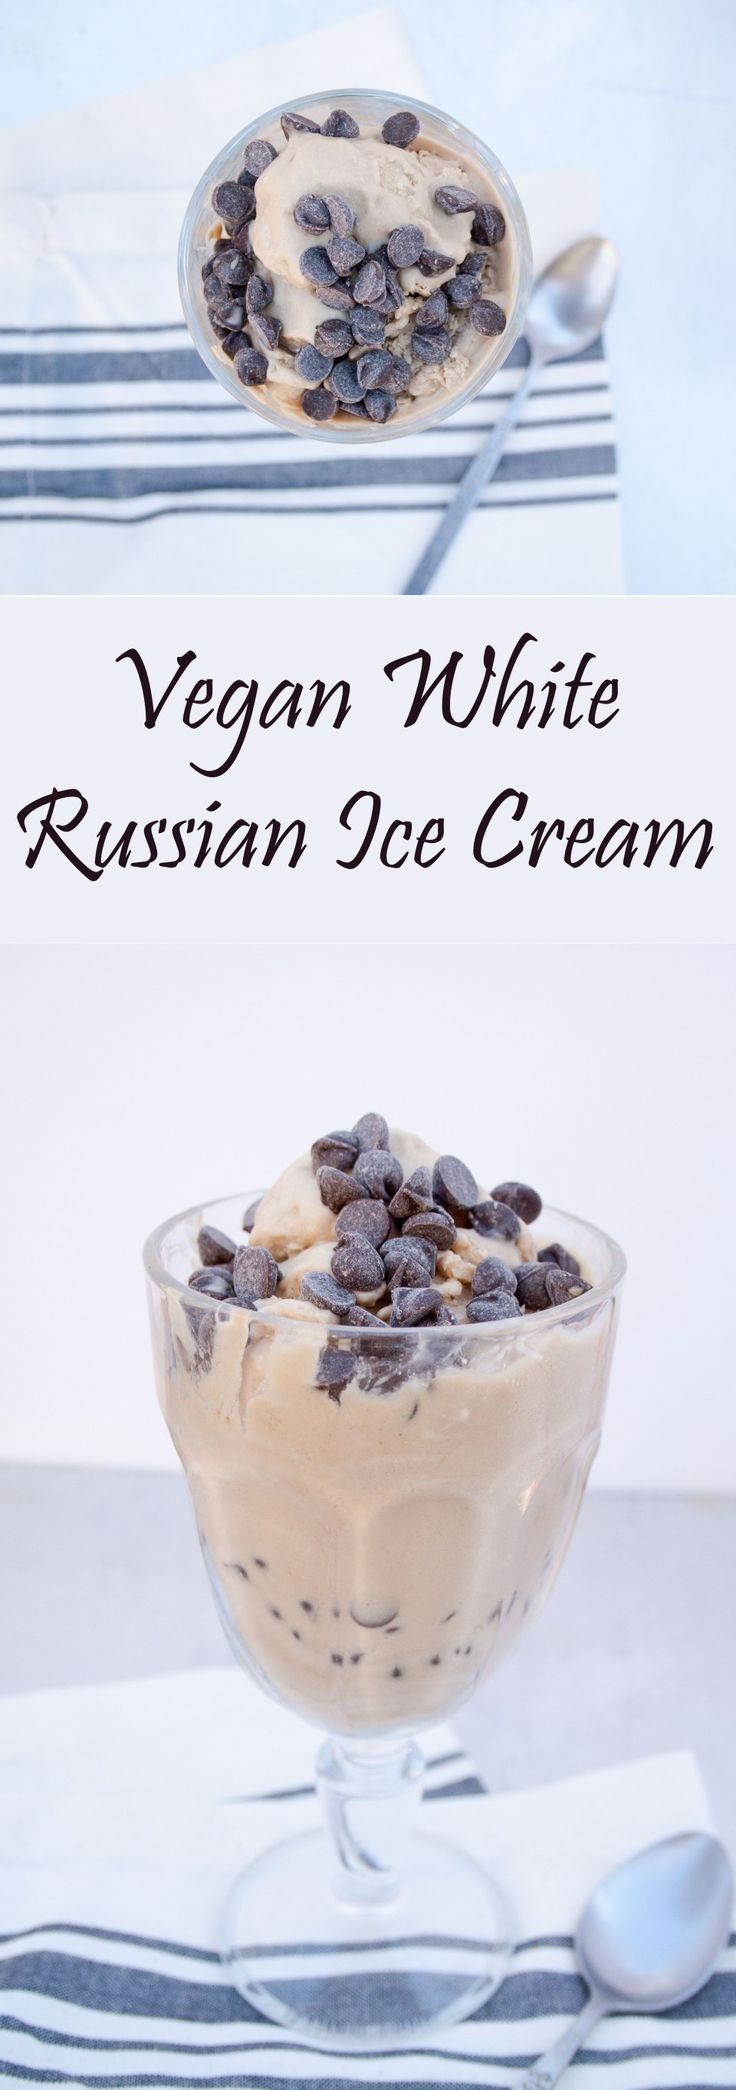 Vegan White Russian Ice Cream - This creamy, rich vegan ice cream is perfect for Valentine's Day or date night.